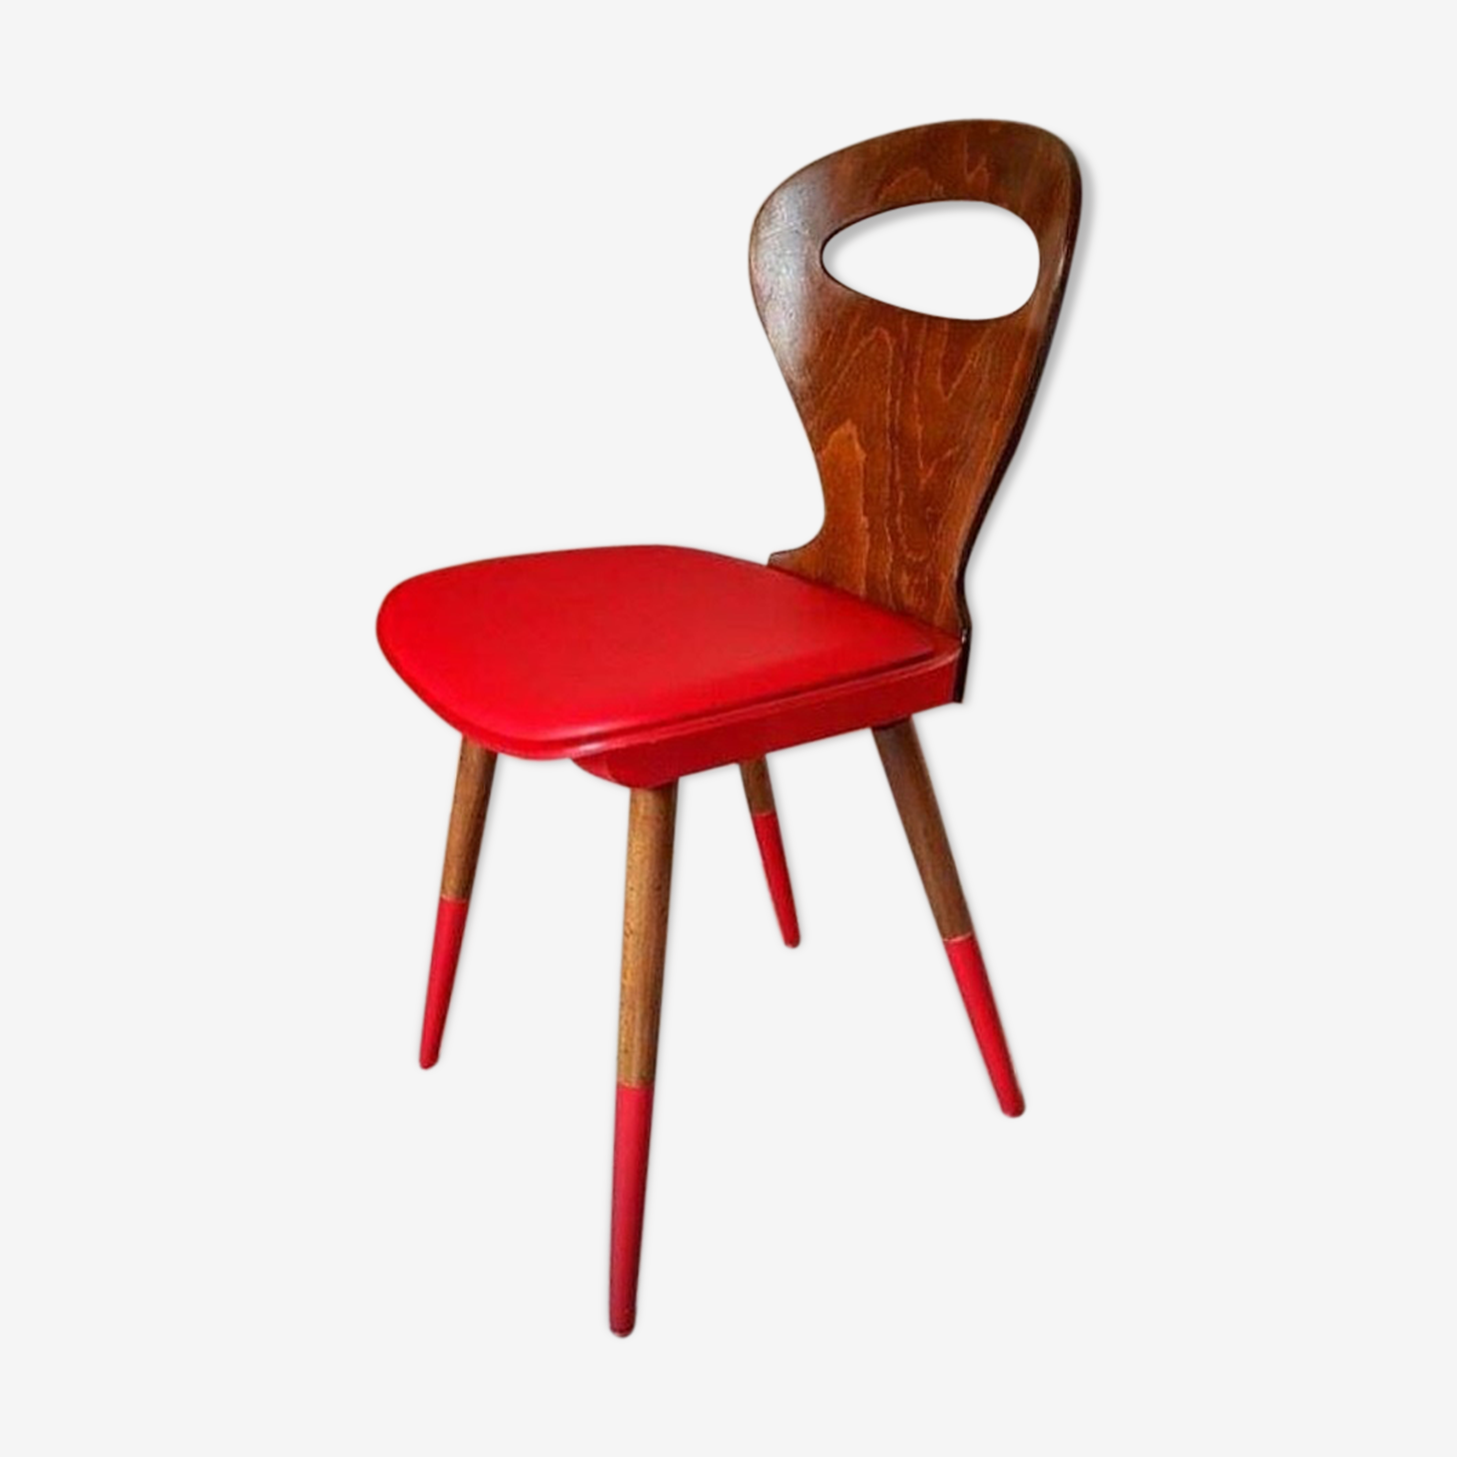 Baumann Chair, relooked with original seat